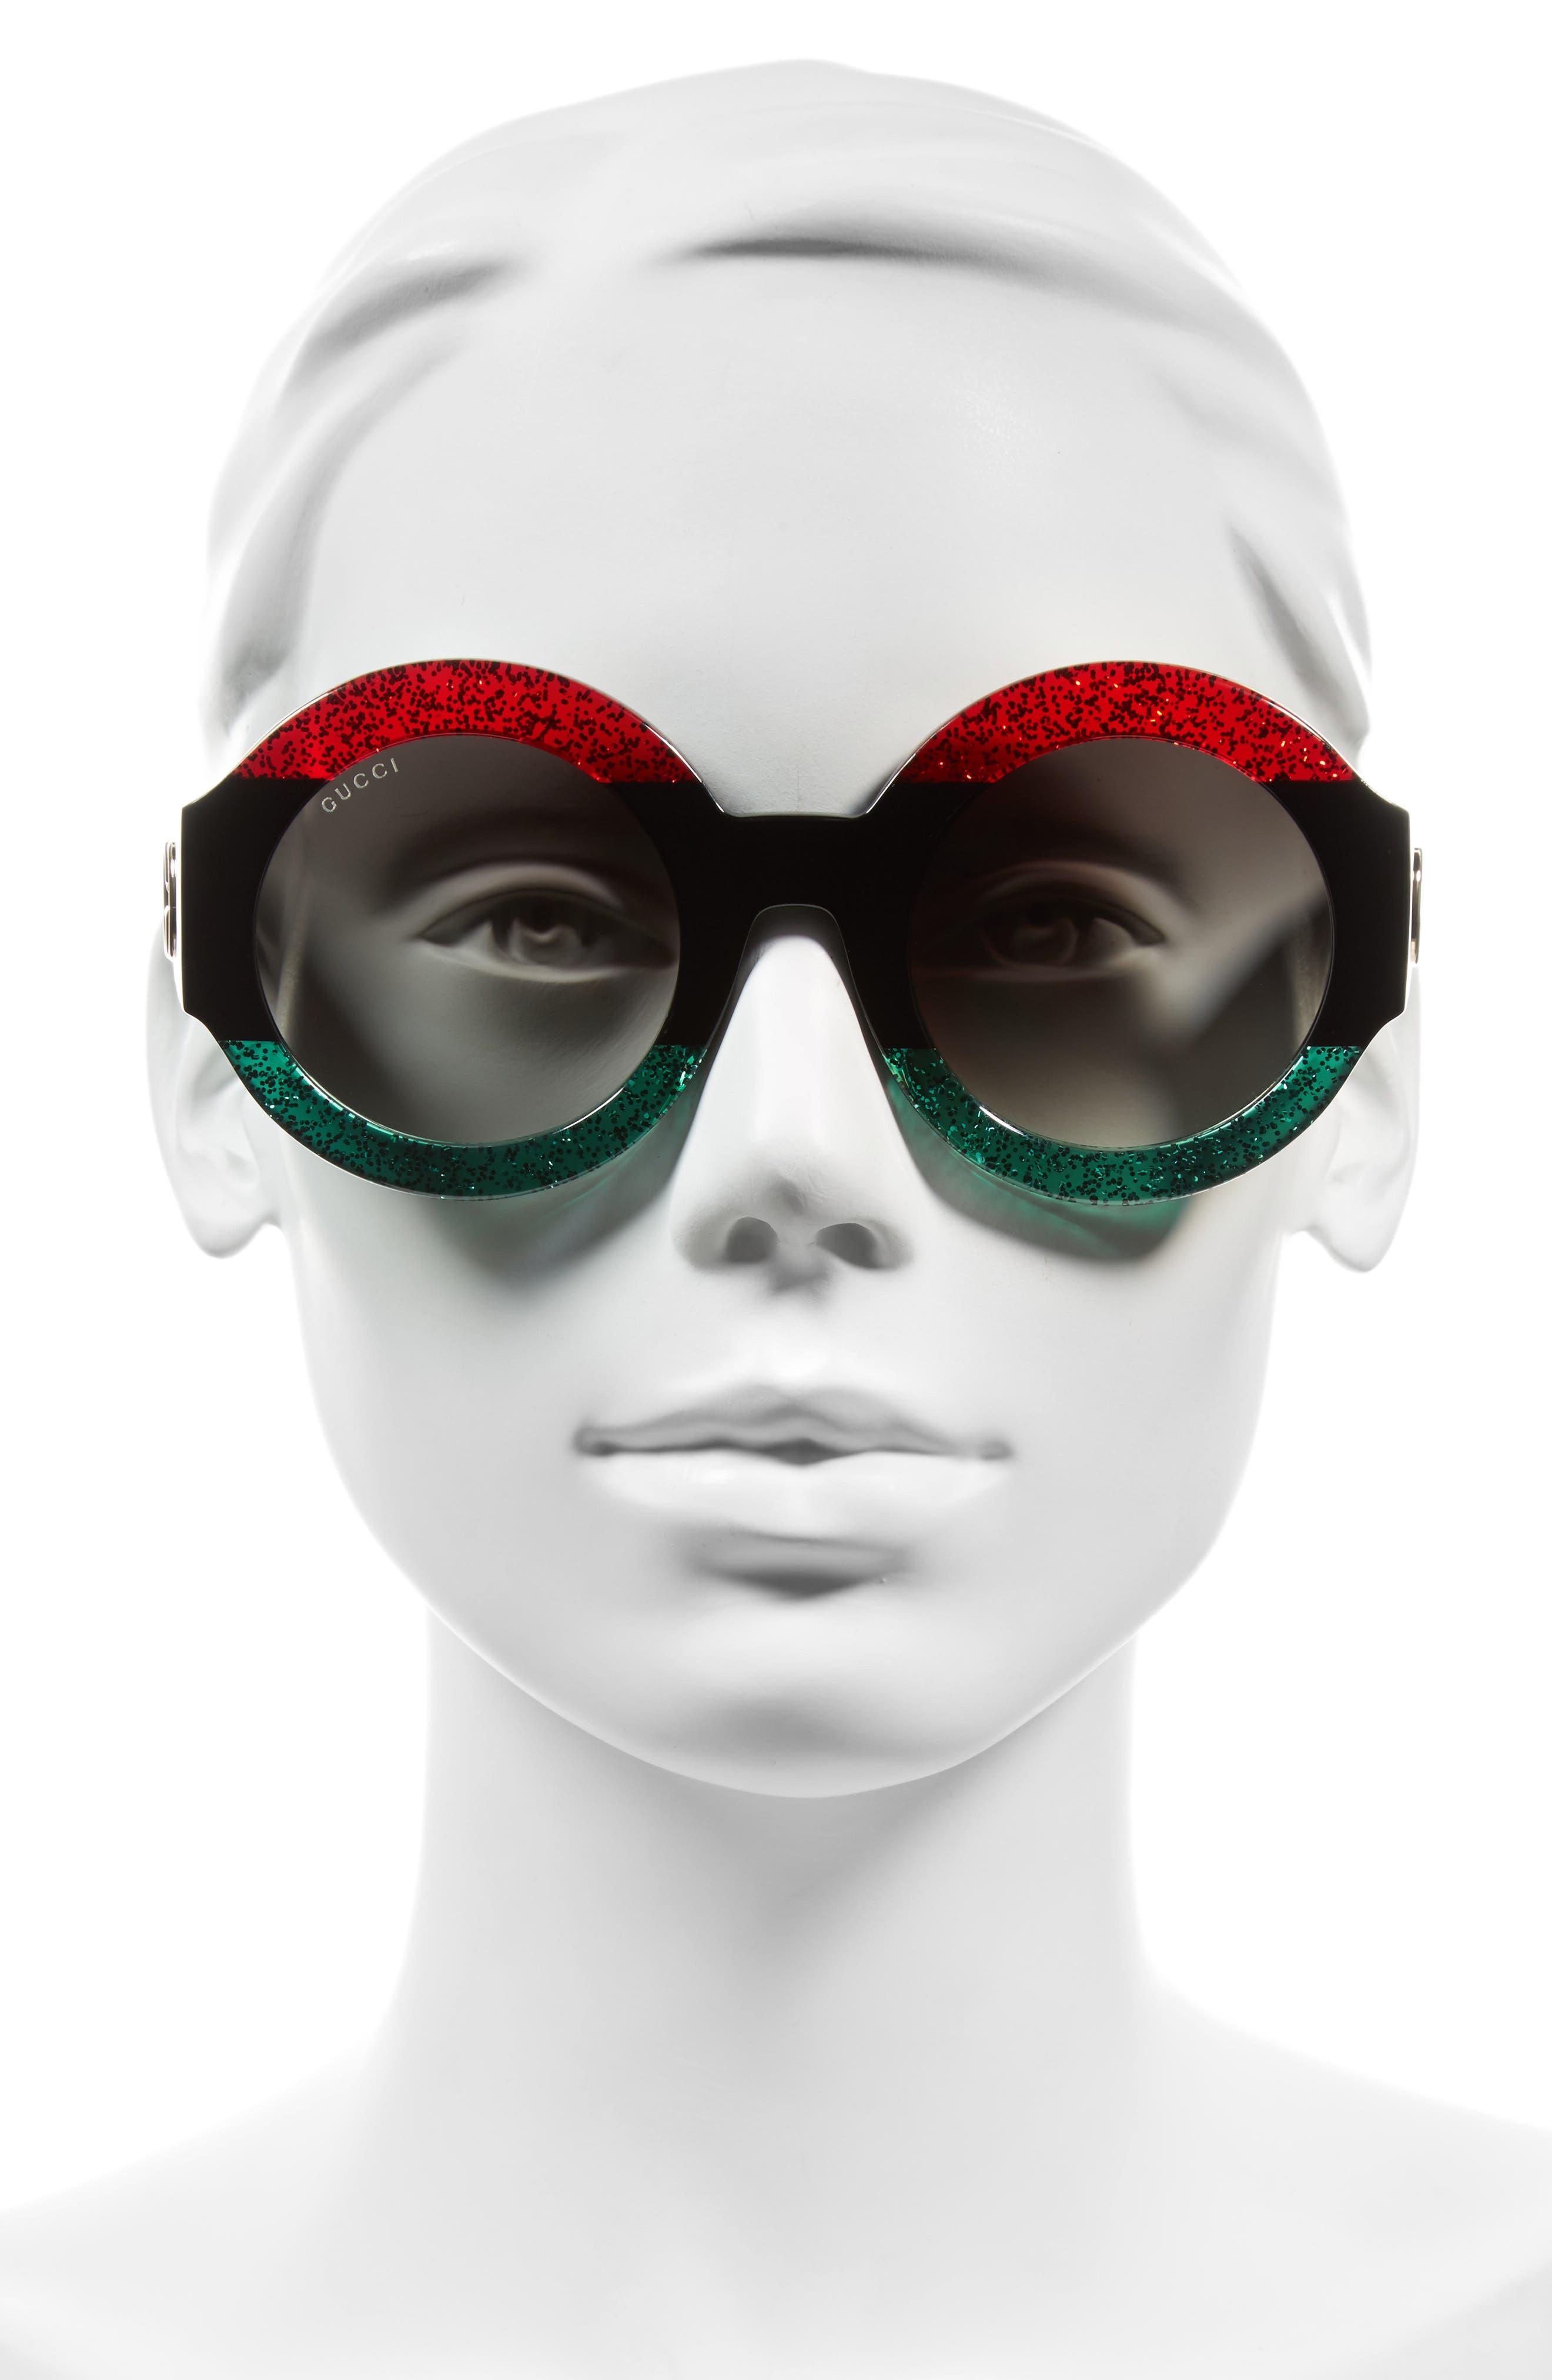 51mm Round Sunglasses,                             Alternate thumbnail 3, color,                             Red Black Green/ Grey